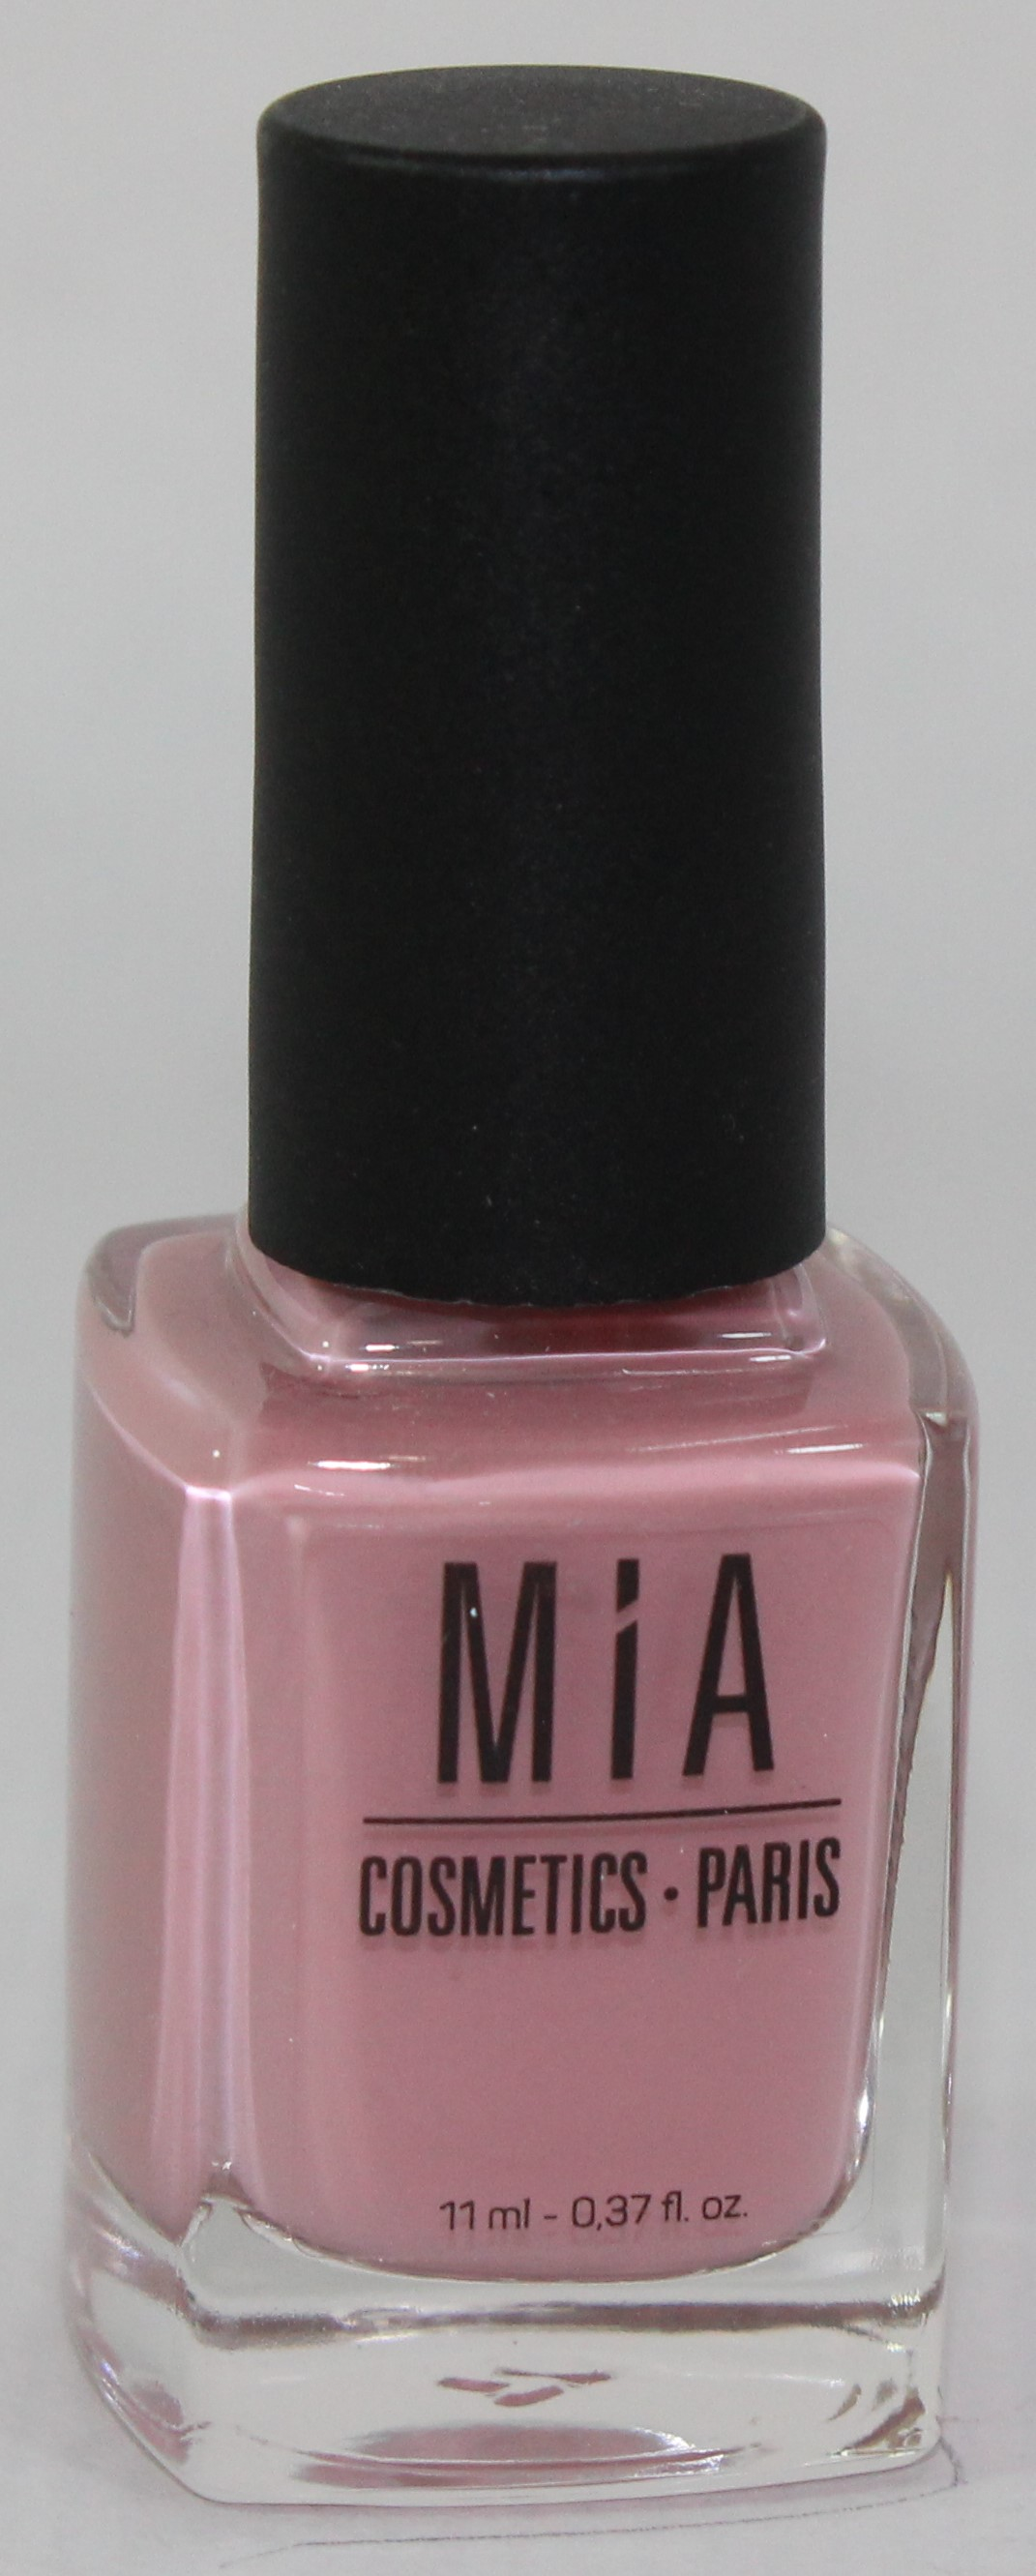 MIA PINTAUÑAS ROSE SMOKE 5-FREE 11ML